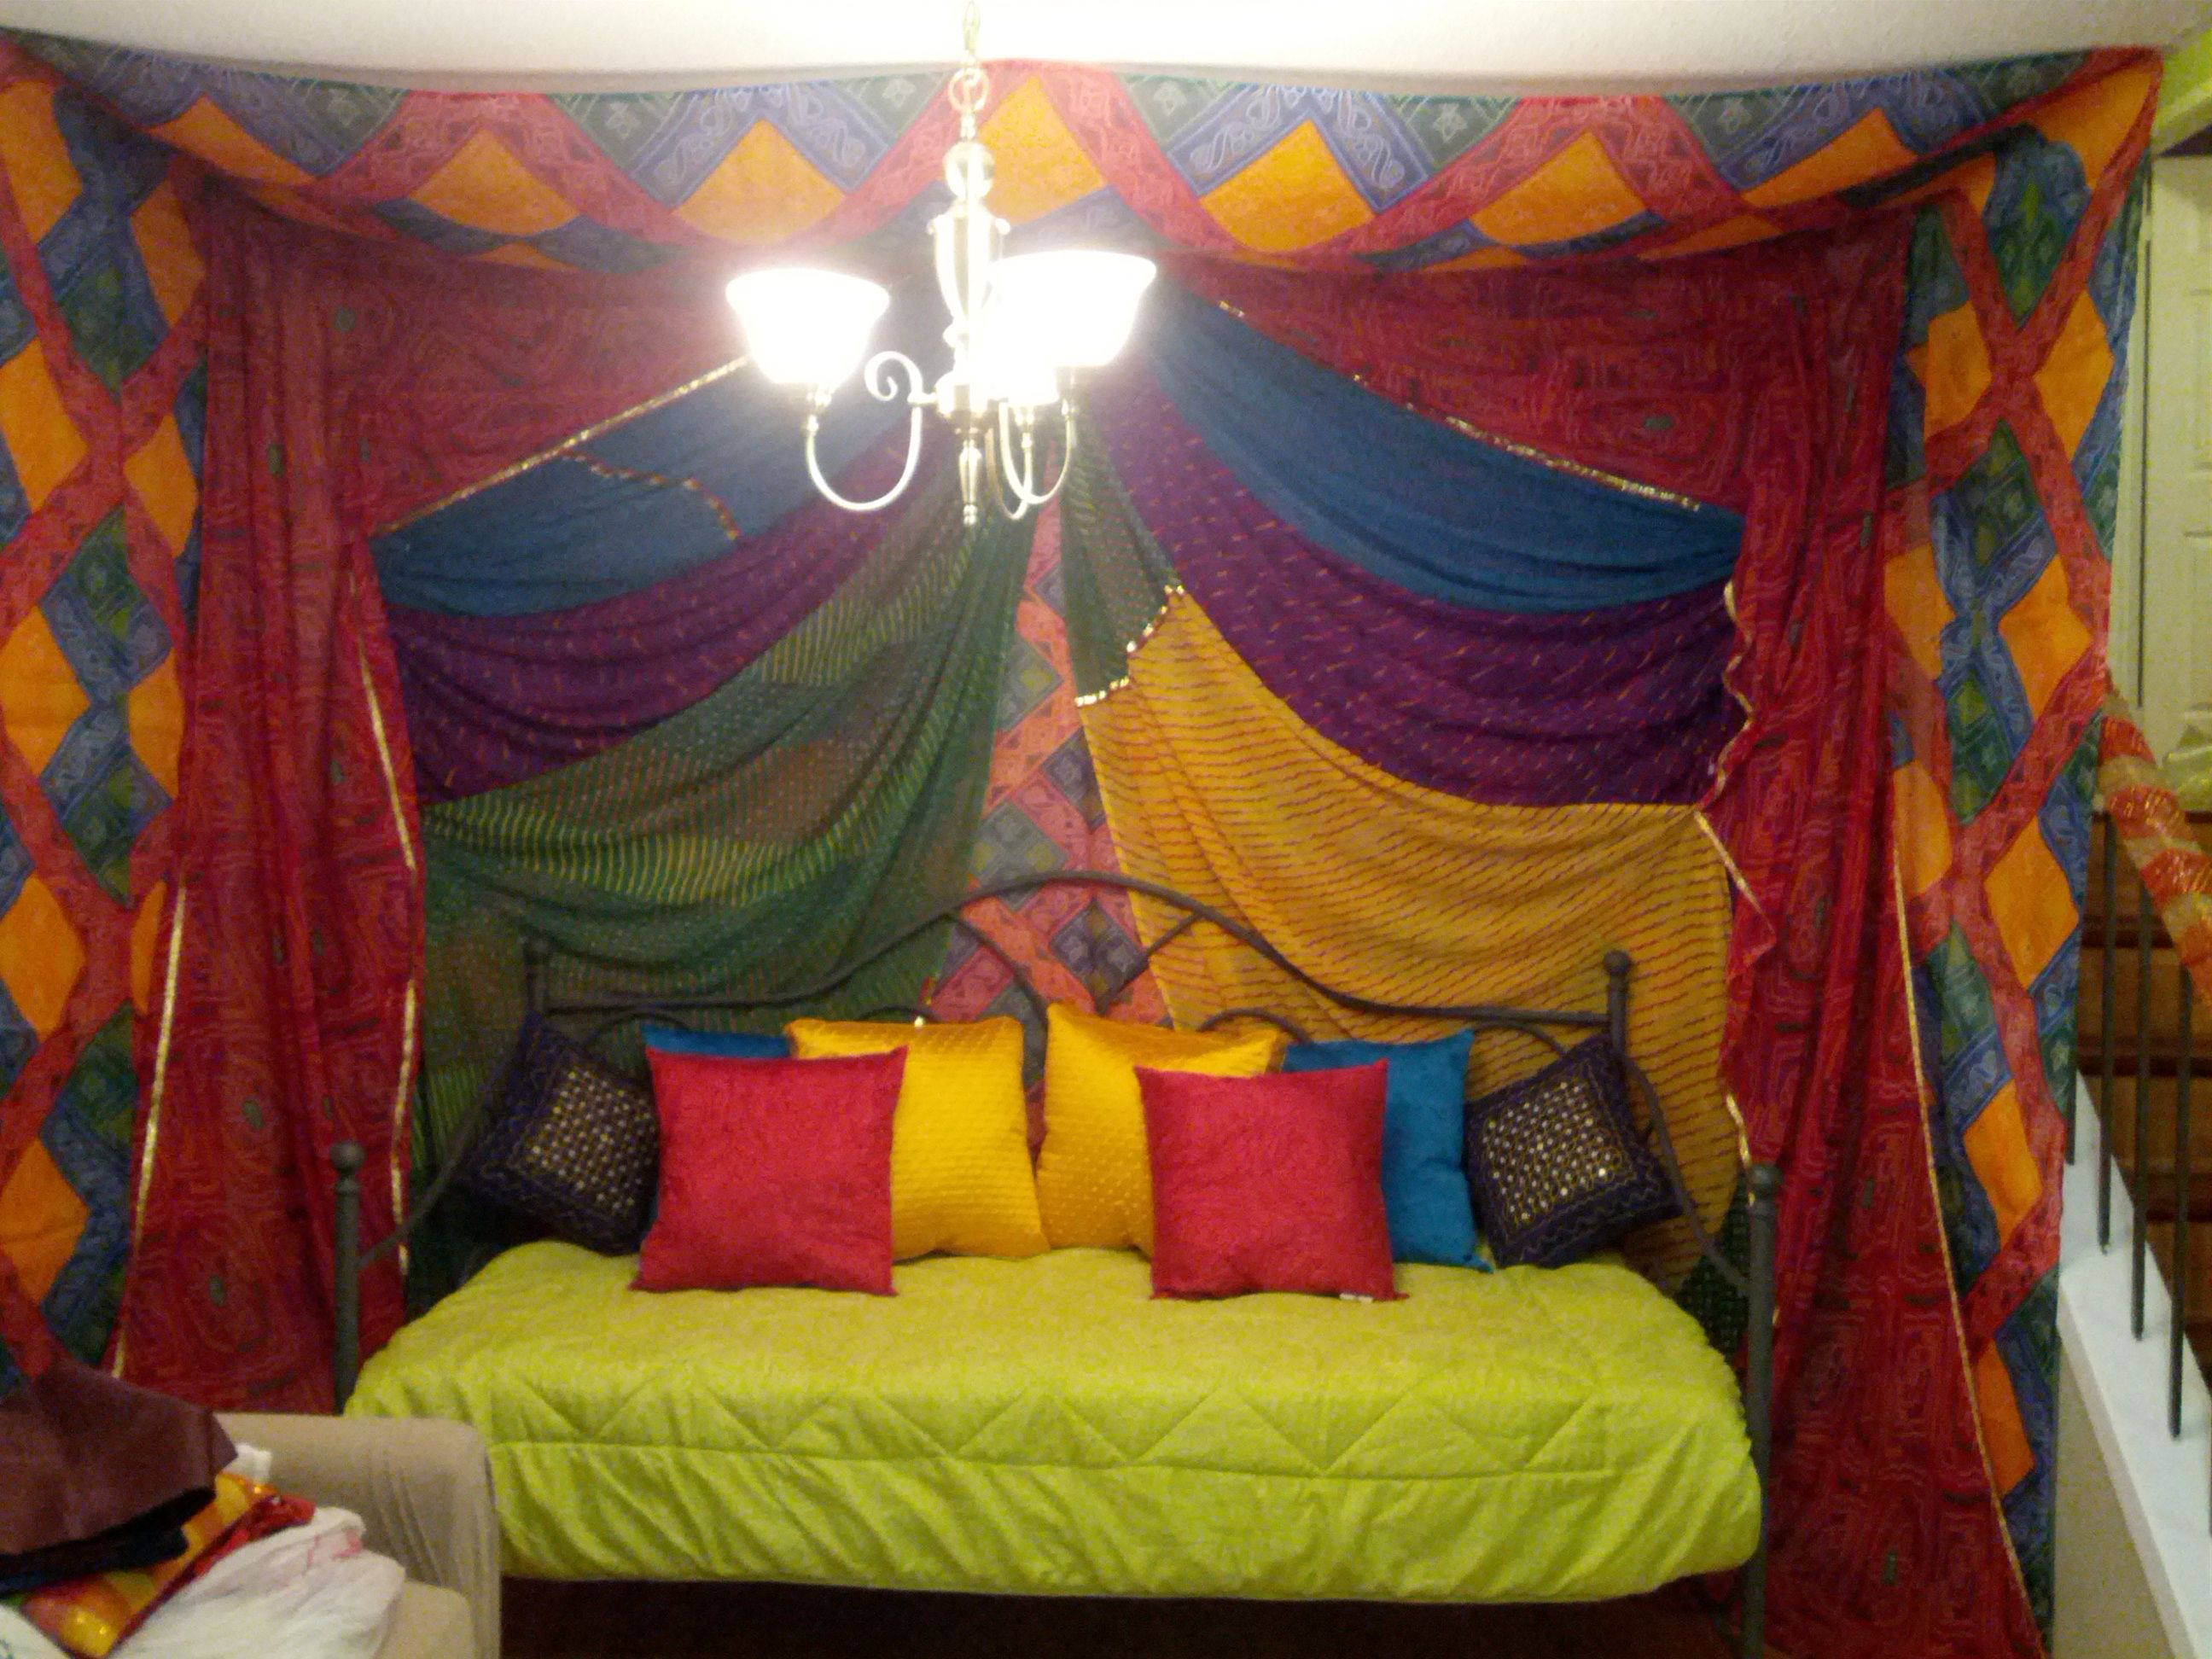 Indian wedding decor at home for a rajasthani inspired for Decoration ideas